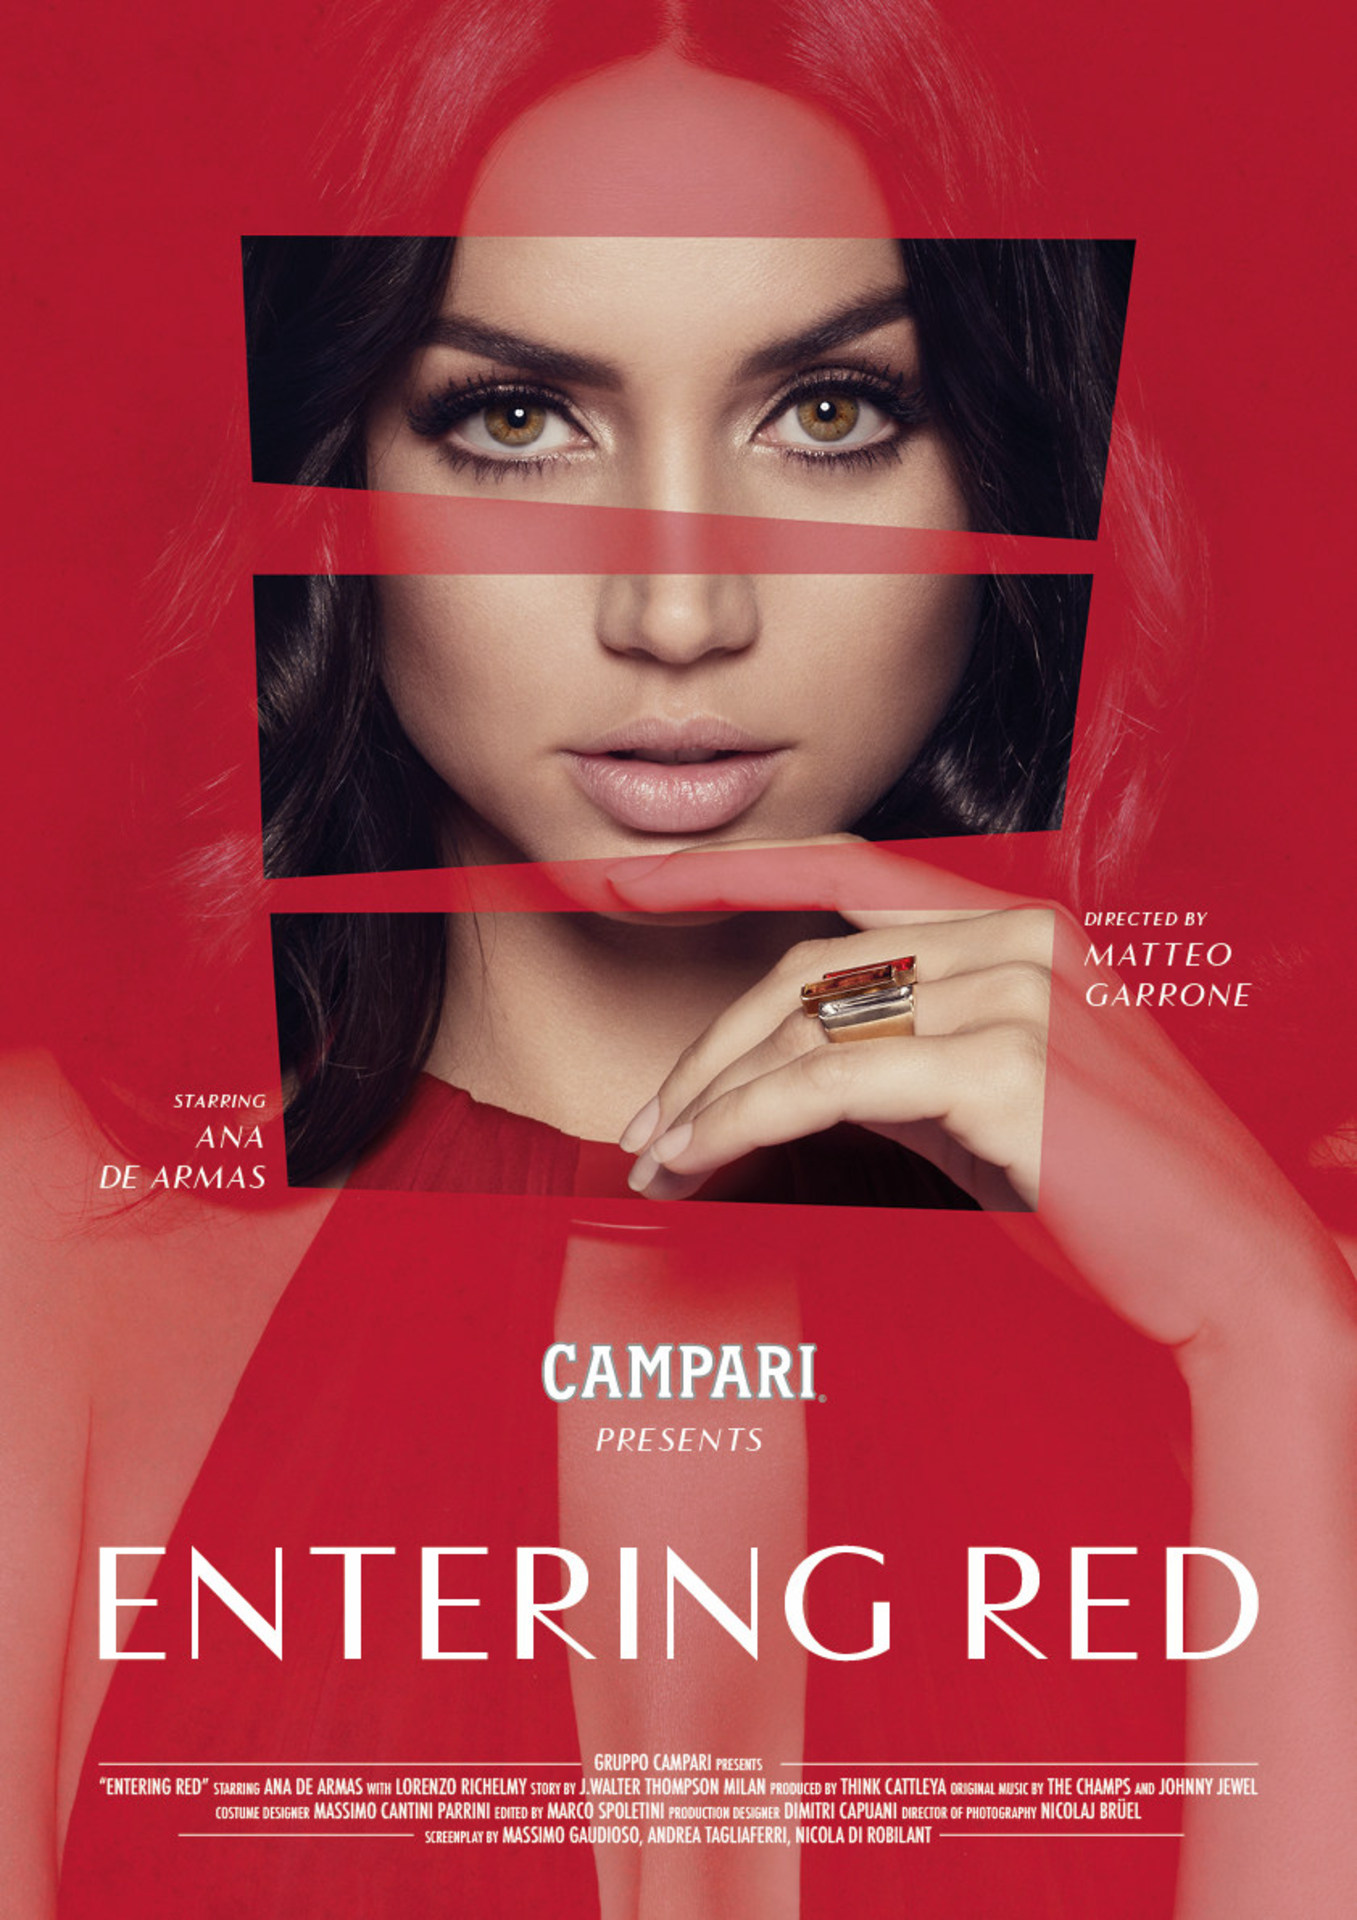 Ana De Armas revealed as the star of Campari Red Diaries 2019, Entering Red, a short movie directed by Matteo Garrone